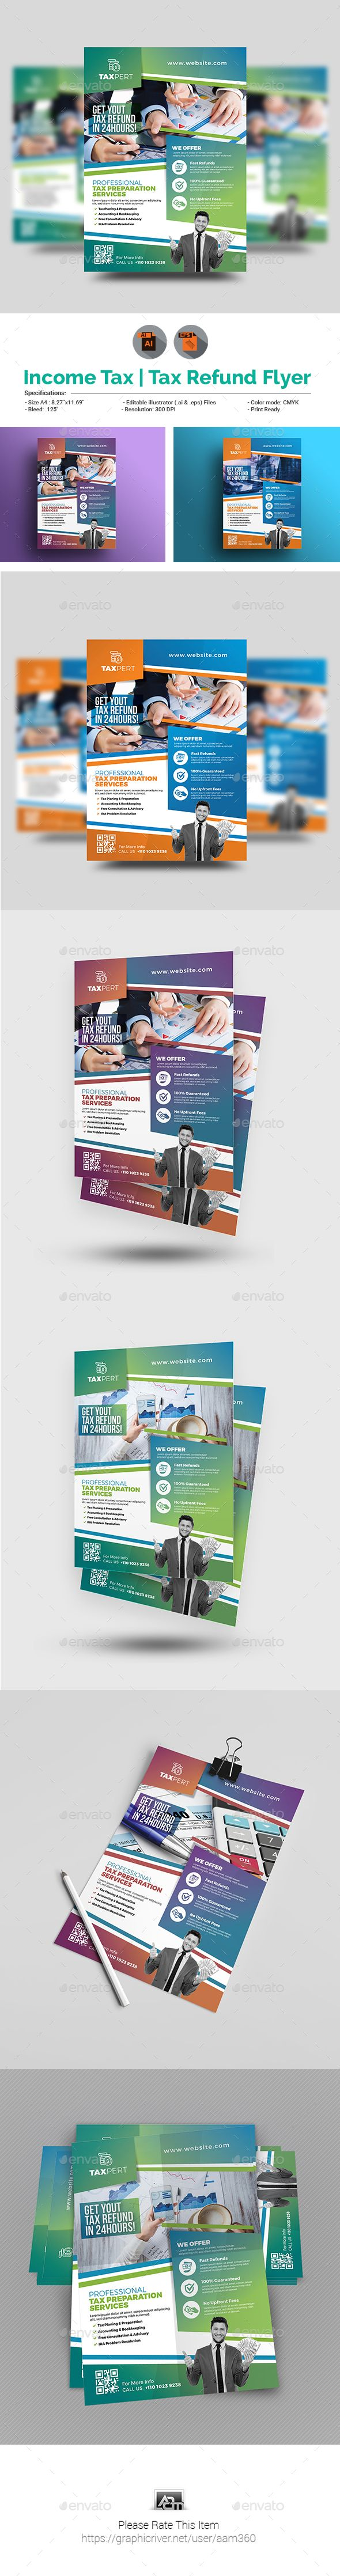 Income Tax #Flyer Template - #Corporate #Flyers